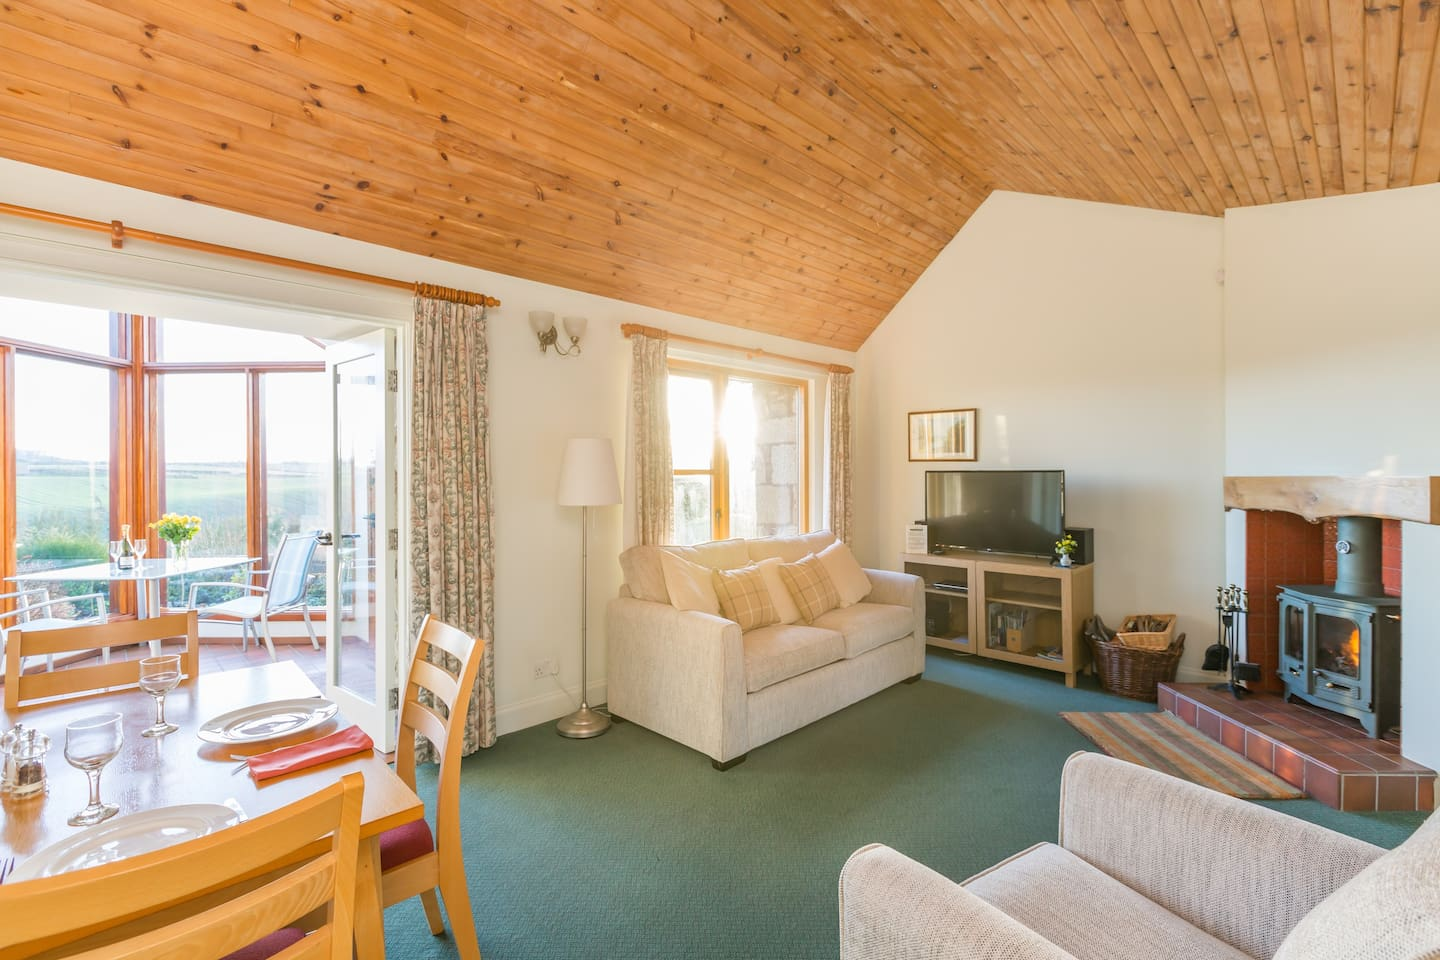 Begrum cottage living room has a wood burning stove, 3-seater sofa bed, another comfy chair, Smart TV with fibre Wi-Fi. There is dining area chairs & table for 4.